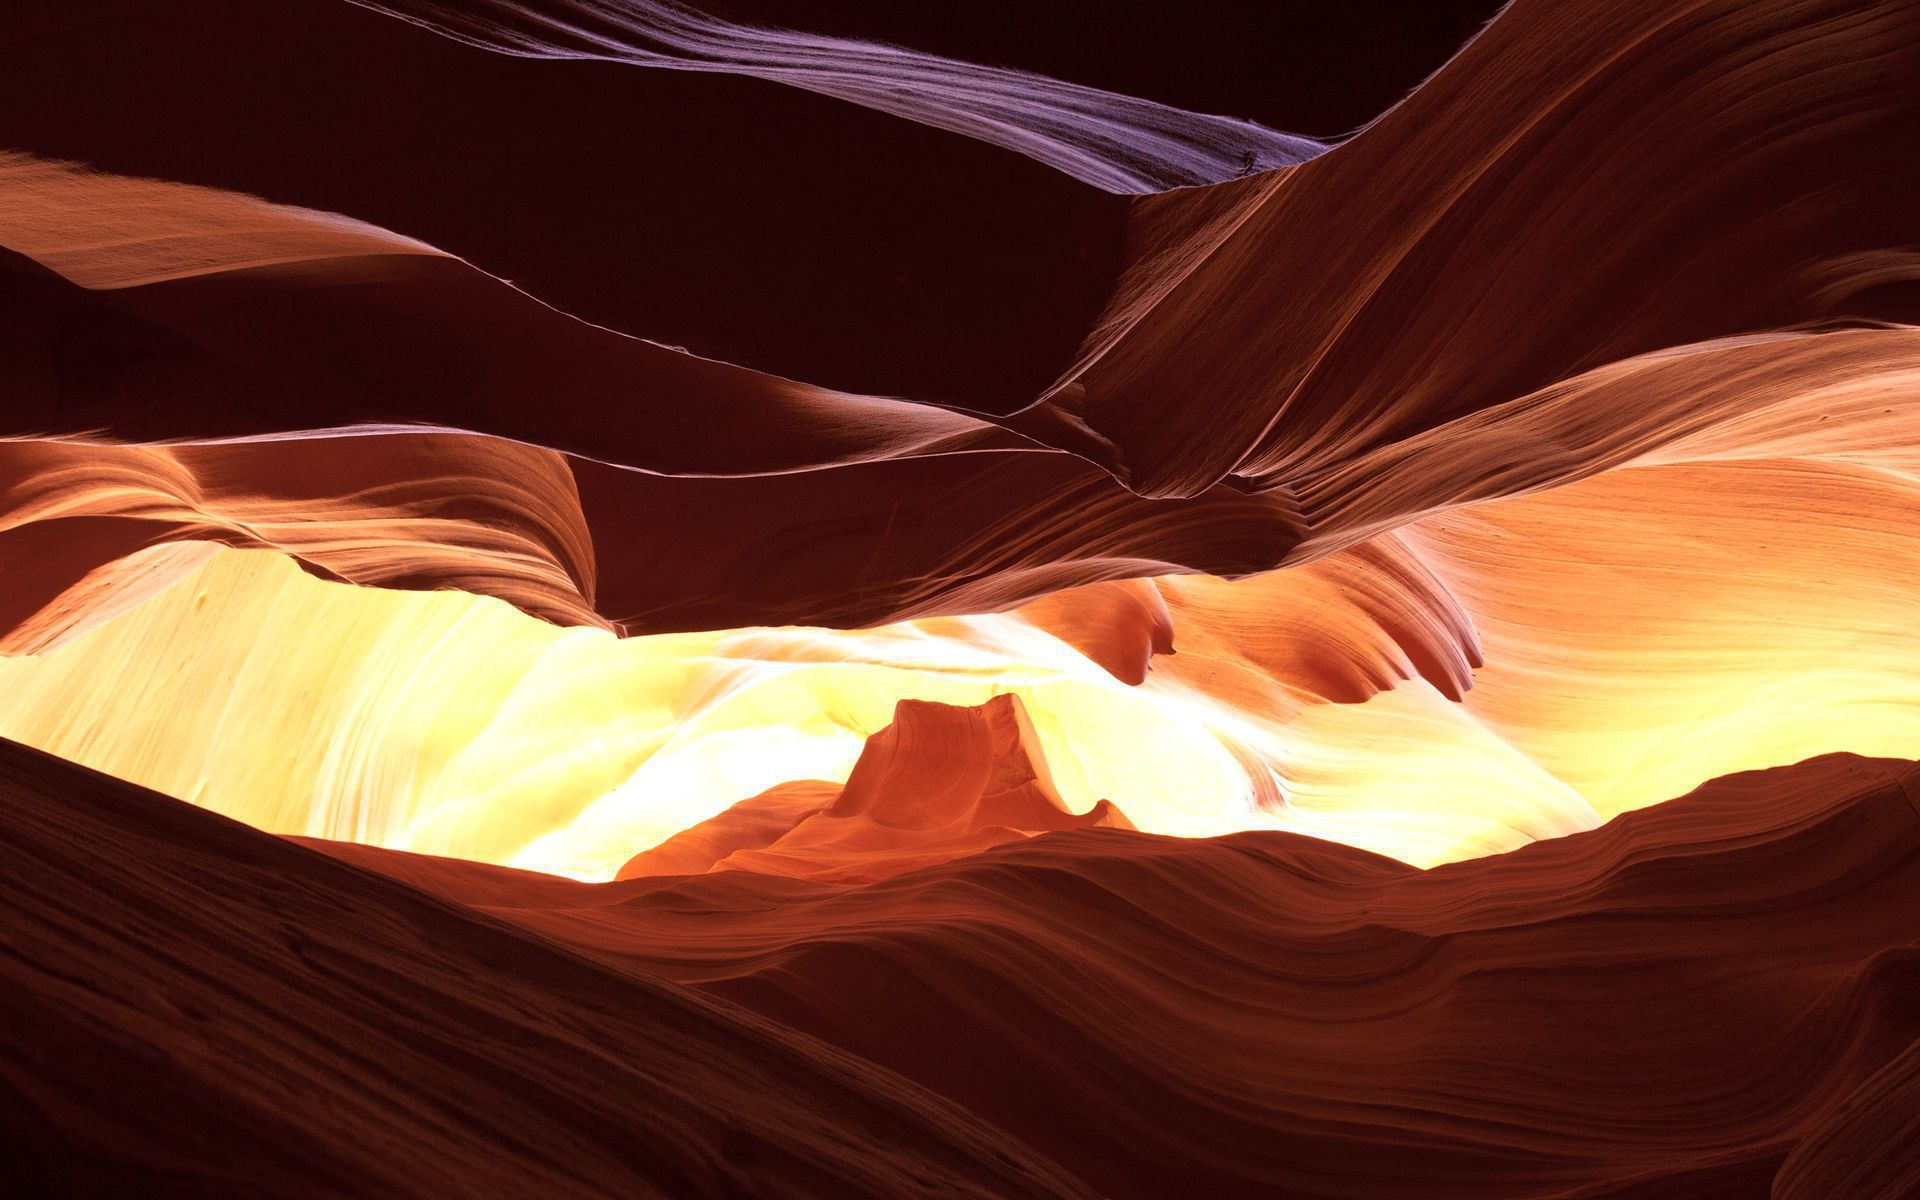 Antelope Canyon High Definition Wallpapers